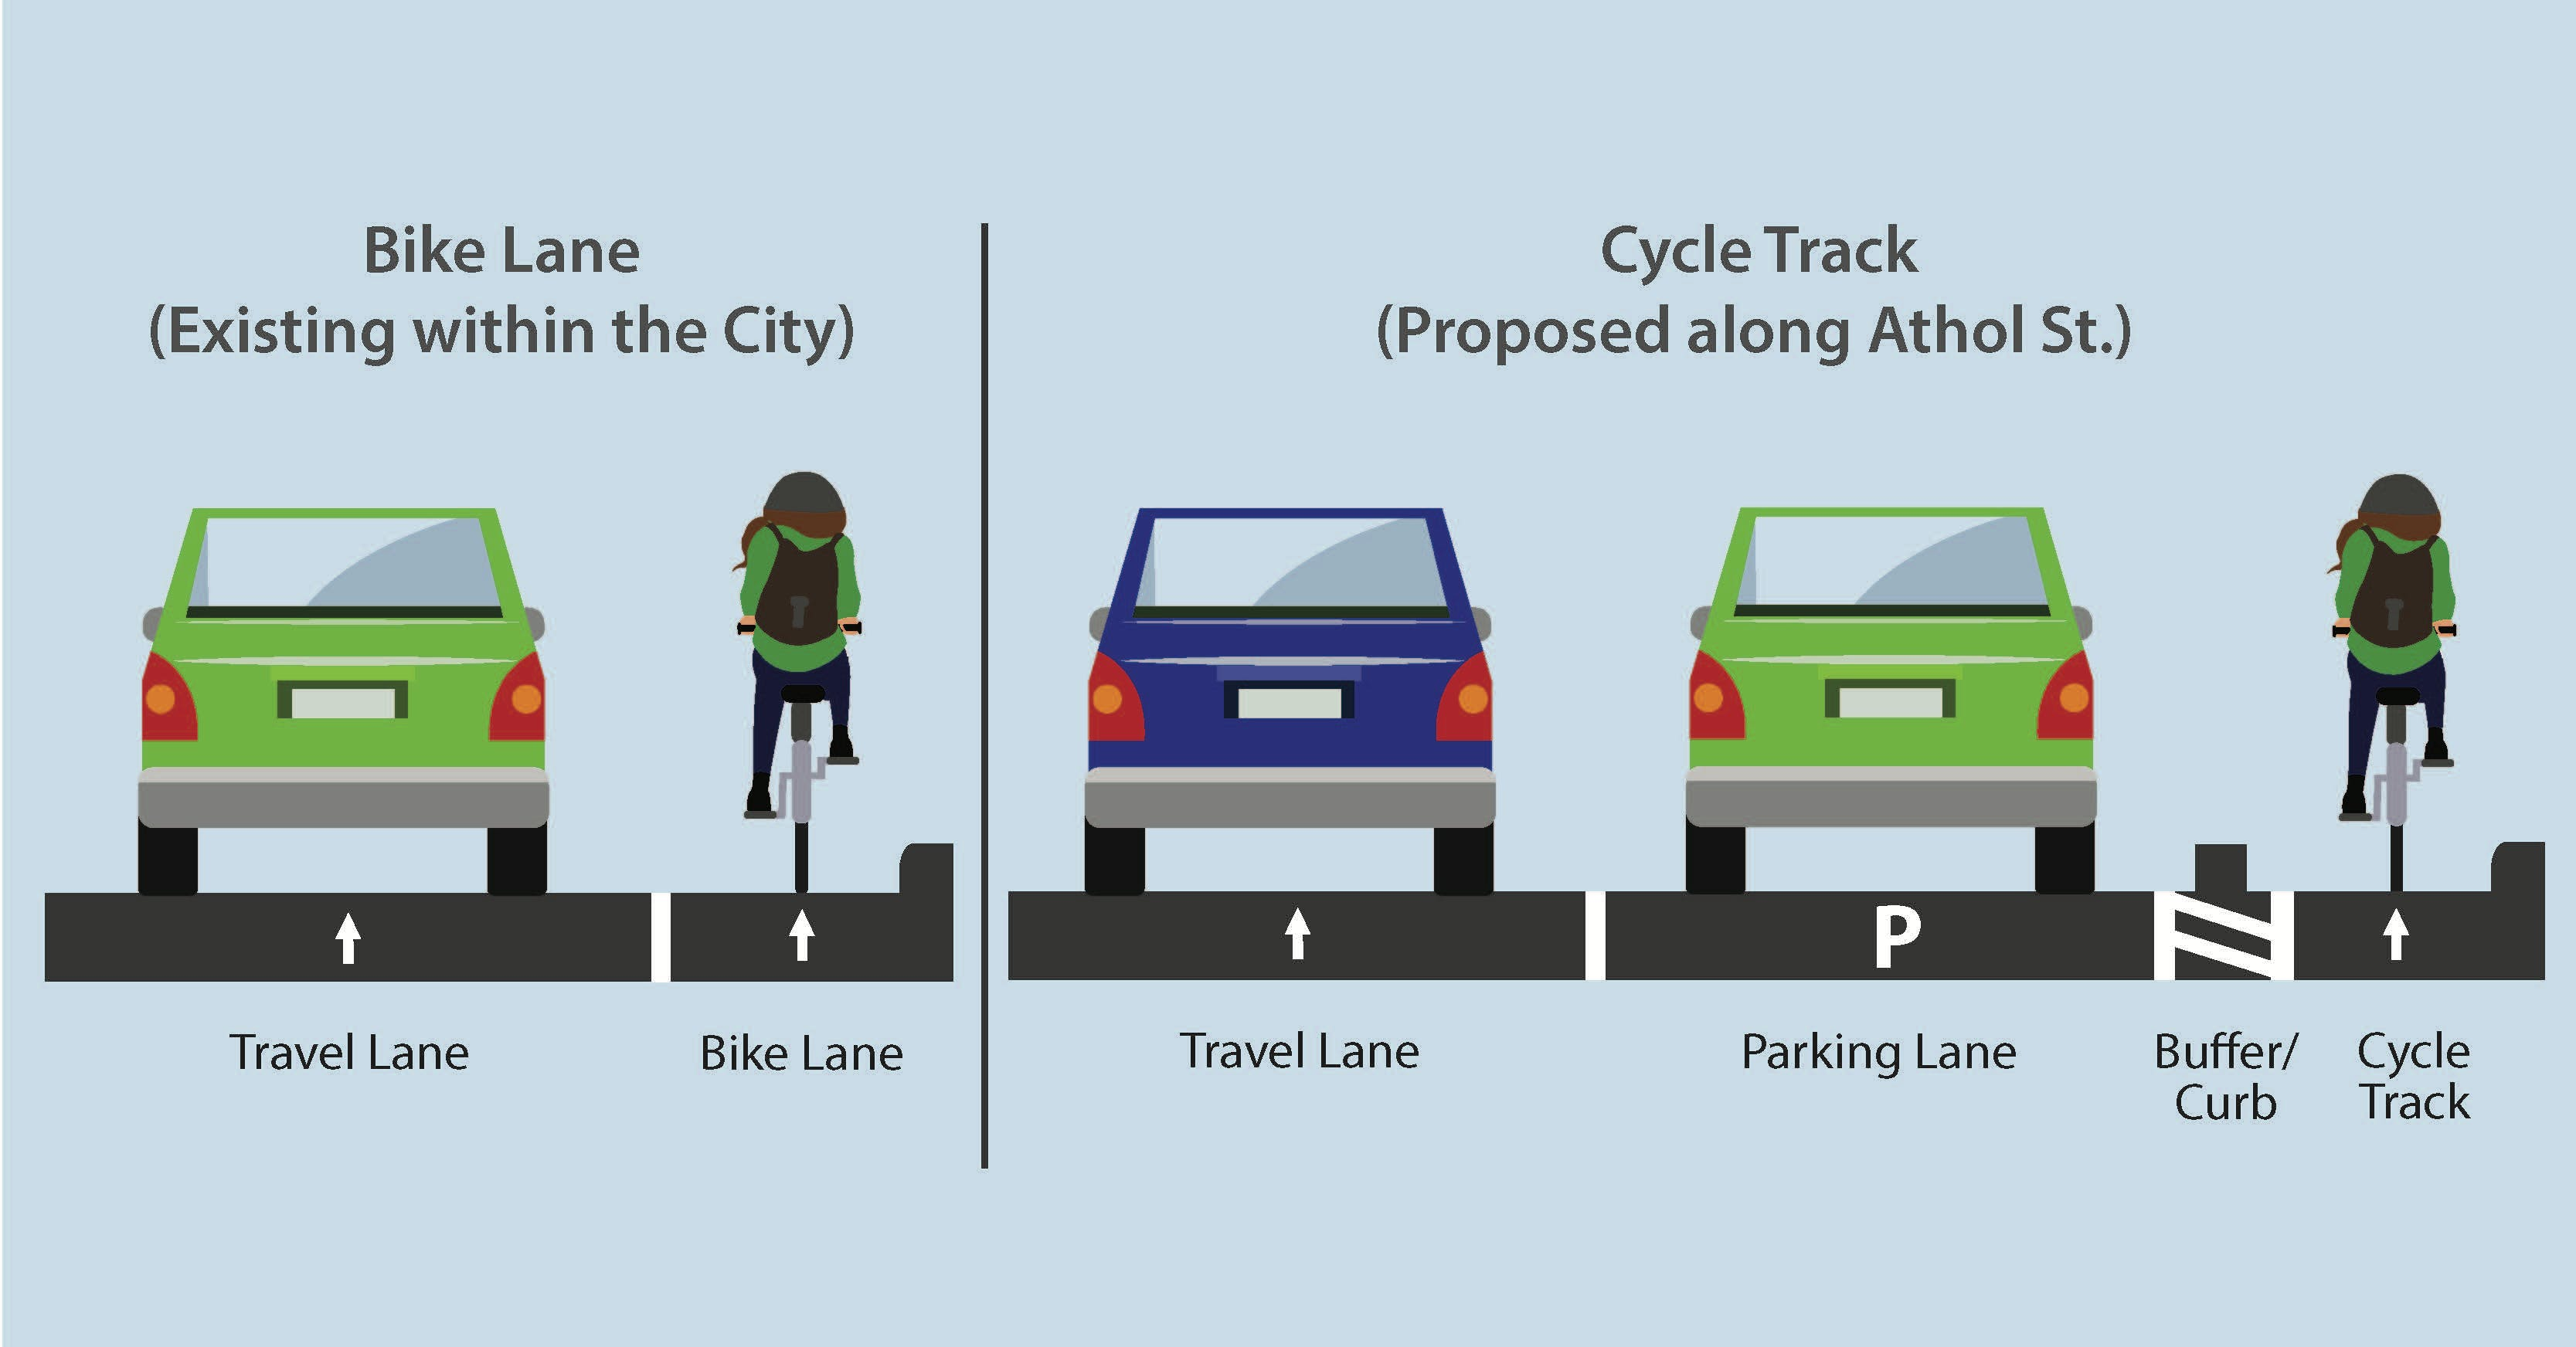 Illustration to show what an existing bike lane looks like in the City of Oshawa and what the proposed Cycle Track along Athol Street would look like.